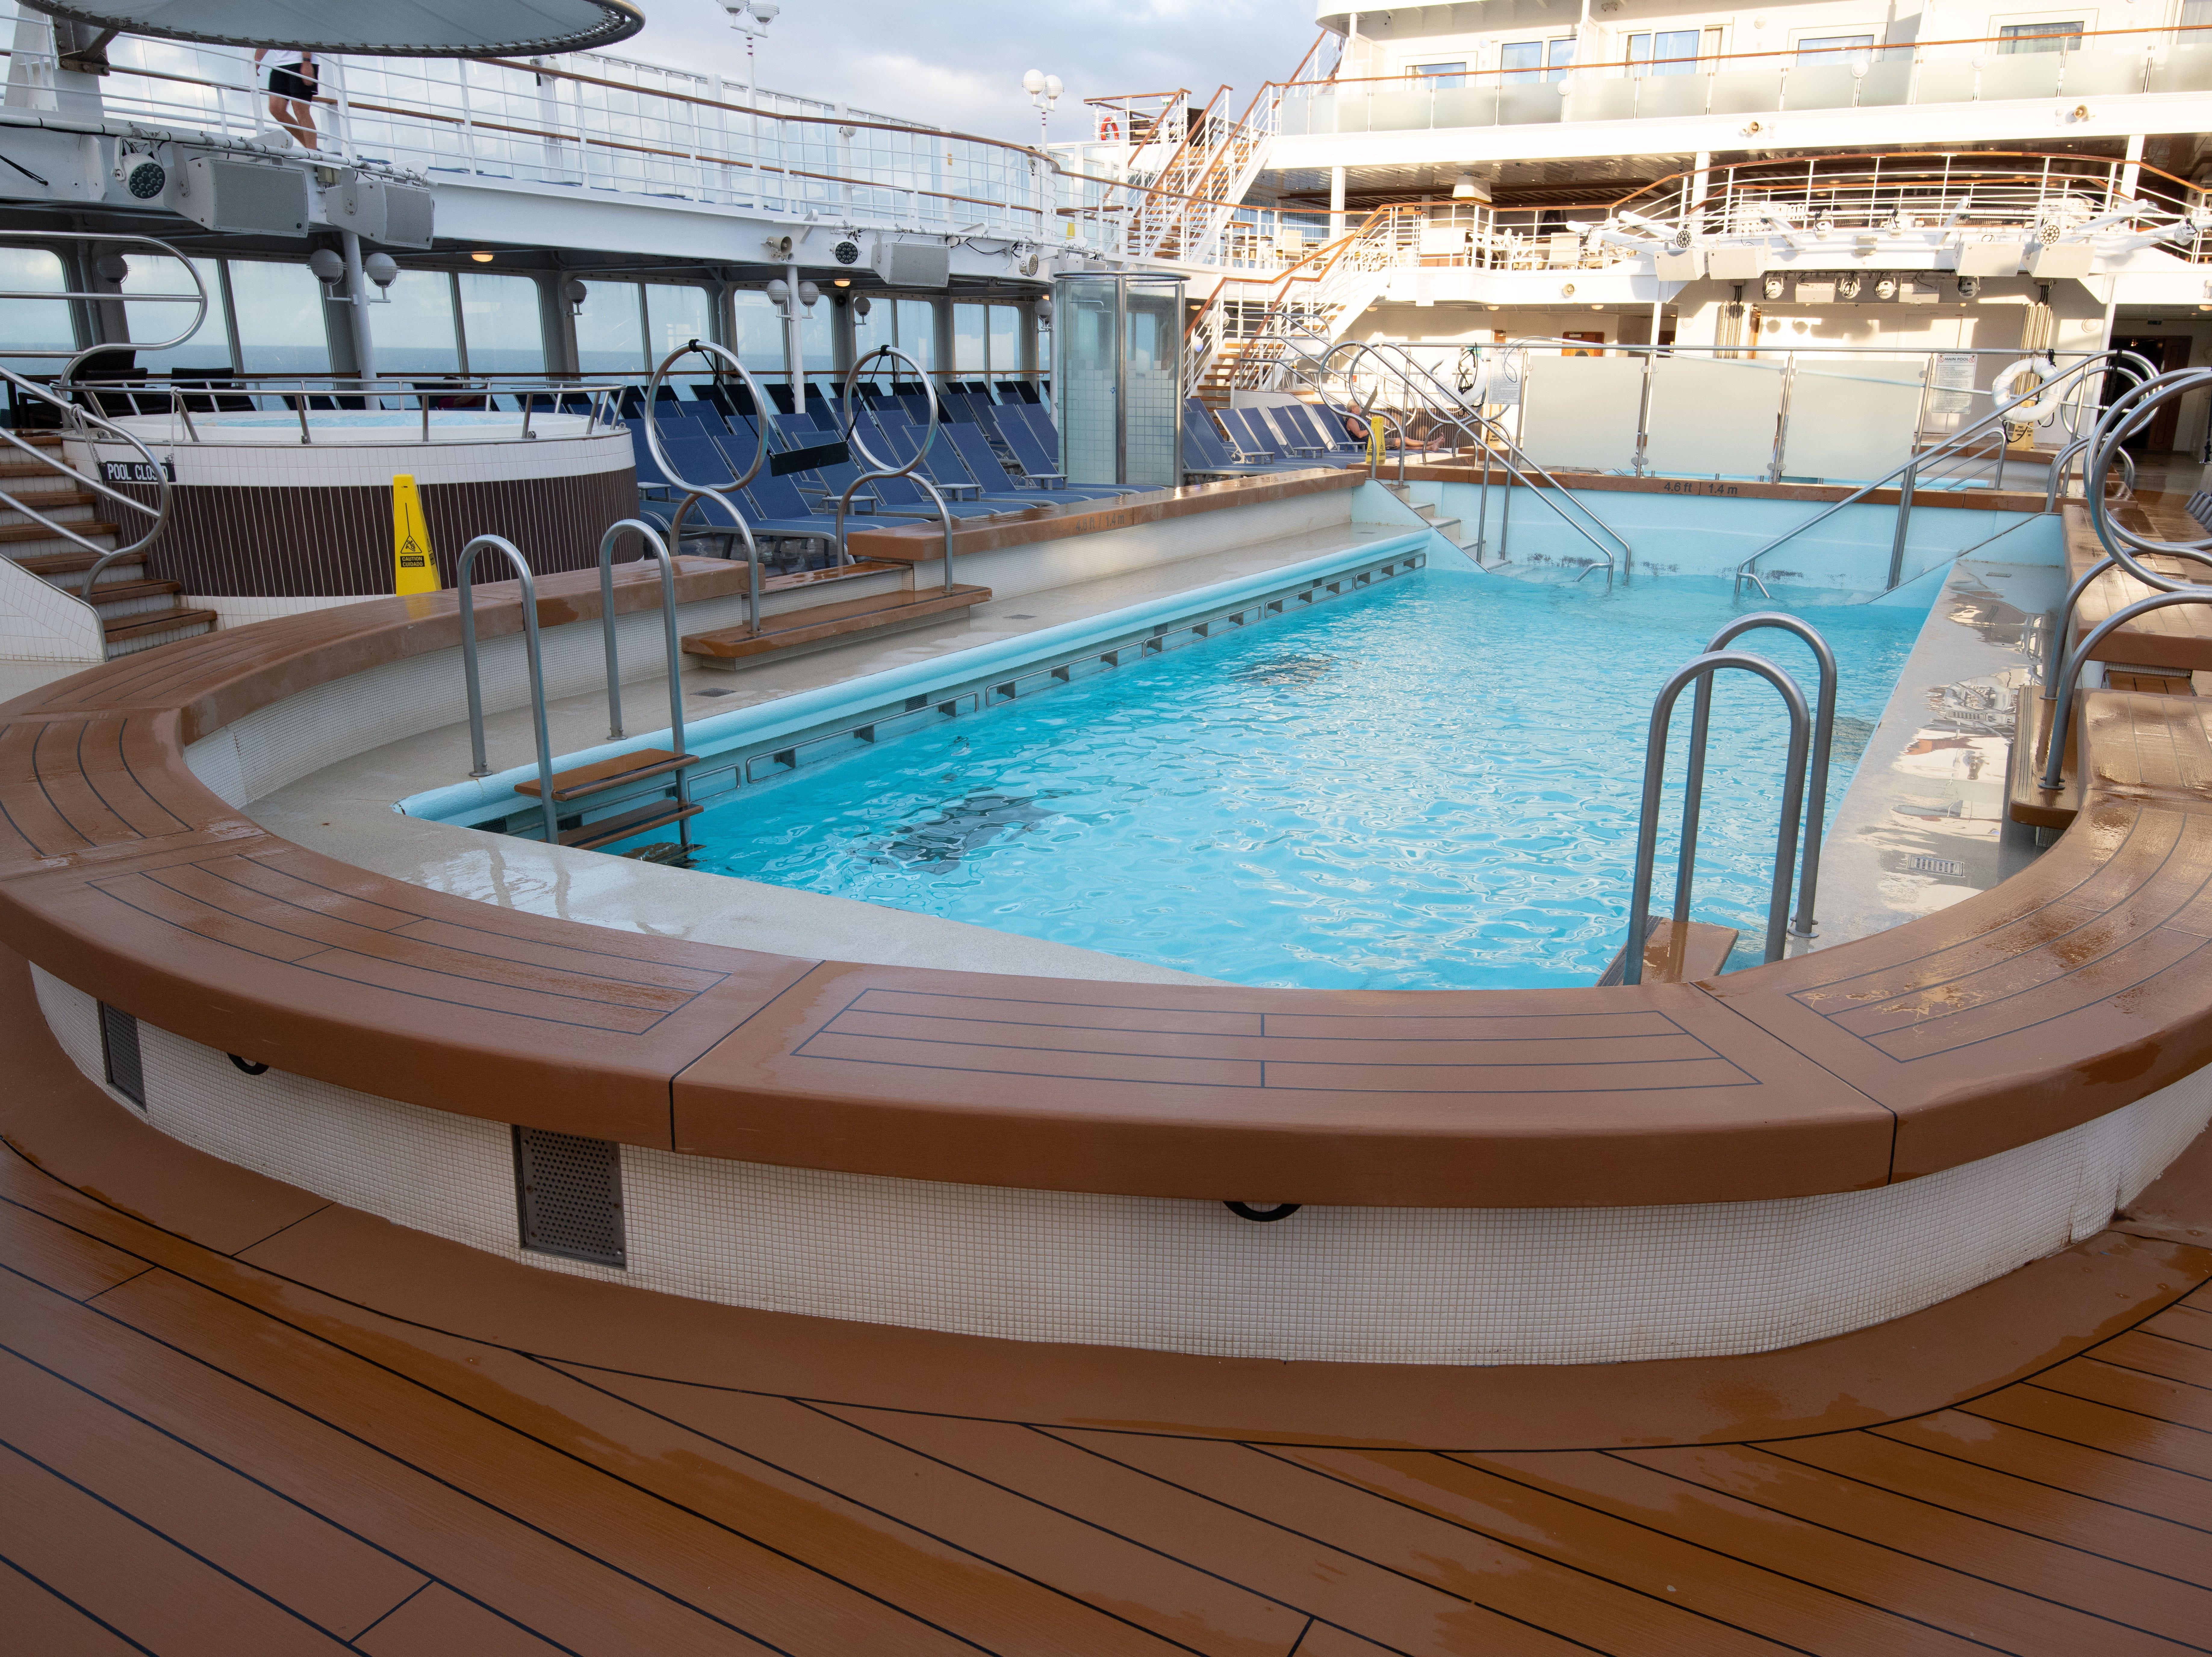 The South Beach Pool on Deck 11 appears to be one long pool but actually is comprised of two pools side by side.